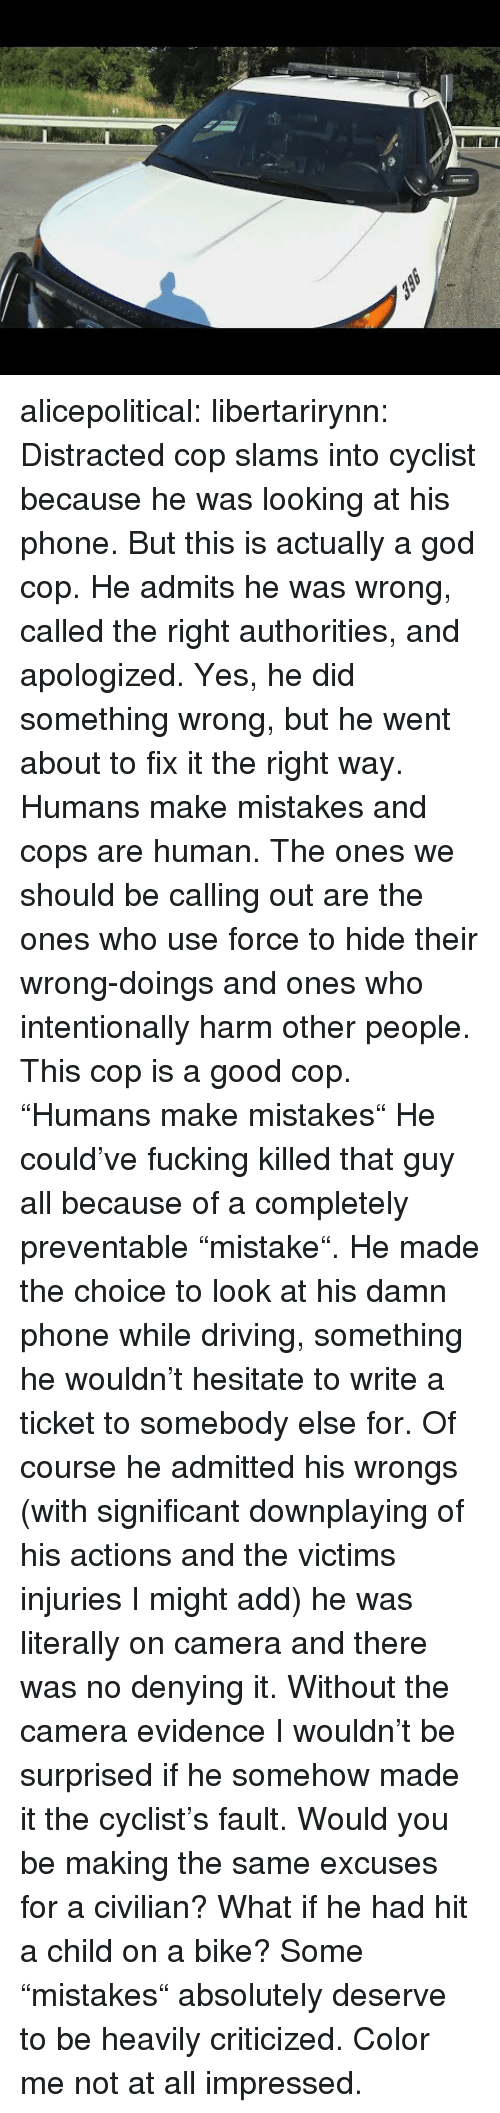 """Driving, Fucking, and God: alicepolitical:  libertarirynn: Distracted cop slams into cyclist because he was looking at his phone. But this is actually a god cop. He admits he was wrong, called the right authorities, and apologized. Yes, he did something wrong, but he went about to fix it the right way. Humans make mistakes and cops are human. The ones we should be calling out are the ones who use force to hide their wrong-doings and ones who intentionally harm other people. This cop is a good cop.  """"Humans make mistakes"""" He could've fucking killed that guy all because of a completely preventable """"mistake"""". He made the choice to look at his damn phone while driving, something he wouldn't hesitate to write a ticket to somebody else for. Of course he admitted his wrongs (with significant downplaying of his actions and the victims injuries I might add) he was literally on camera and there was no denying it. Without the camera evidence I wouldn't be surprised if he somehow made it the cyclist's fault. Would you be making the same excuses for a civilian? What if he had hit a child on a bike? Some """"mistakes"""" absolutely deserve to be heavily criticized. Color me not at all impressed."""